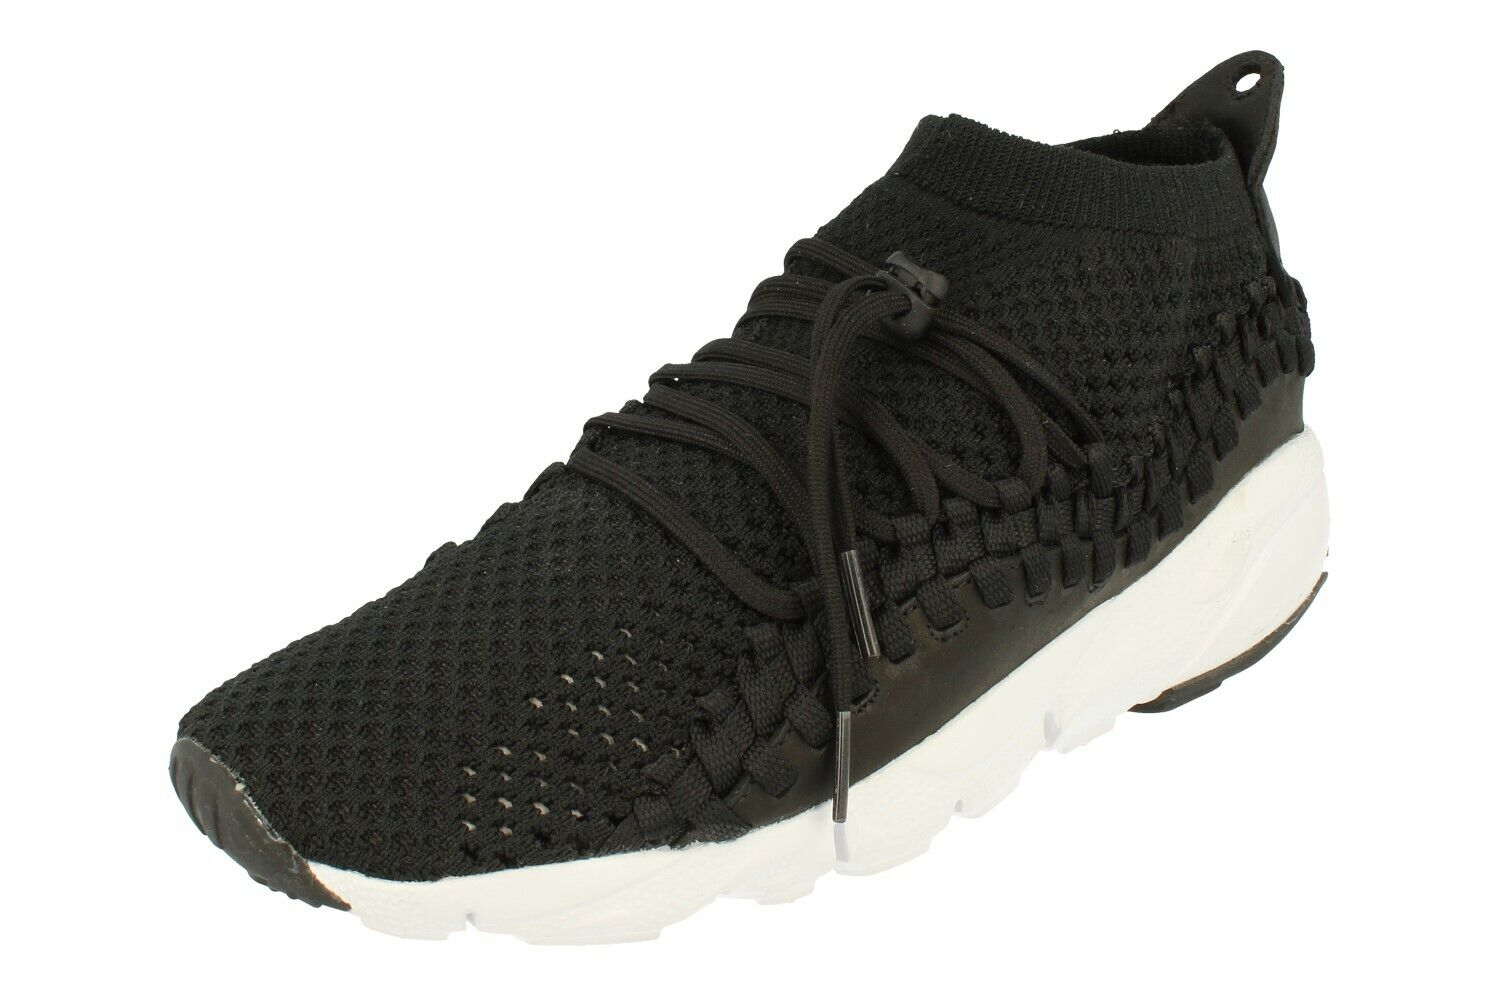 Niko Air Footpse NM Woven  Flyed Mens Running Trainers Ao5417 001  sconto